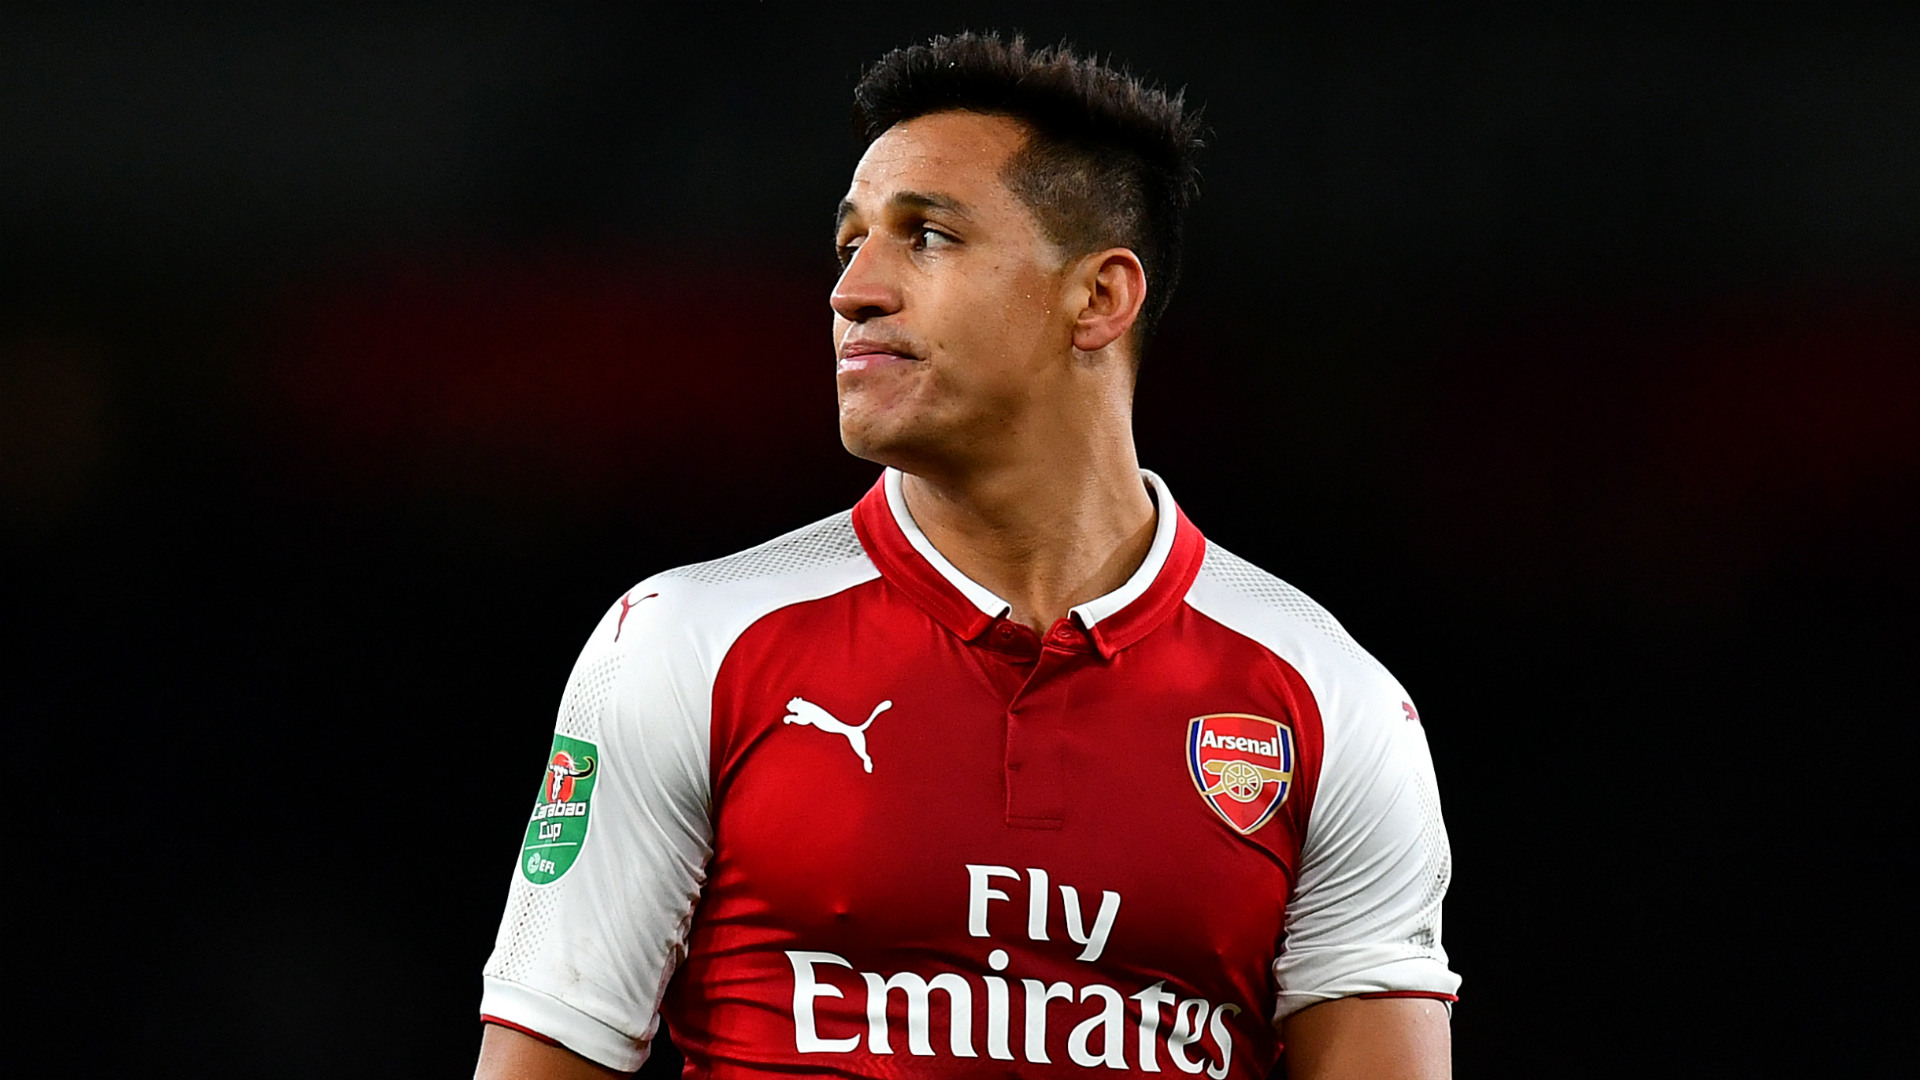 Manchester United January transfer news LIVE: No Alexis in Arsenal squad as January exit looms